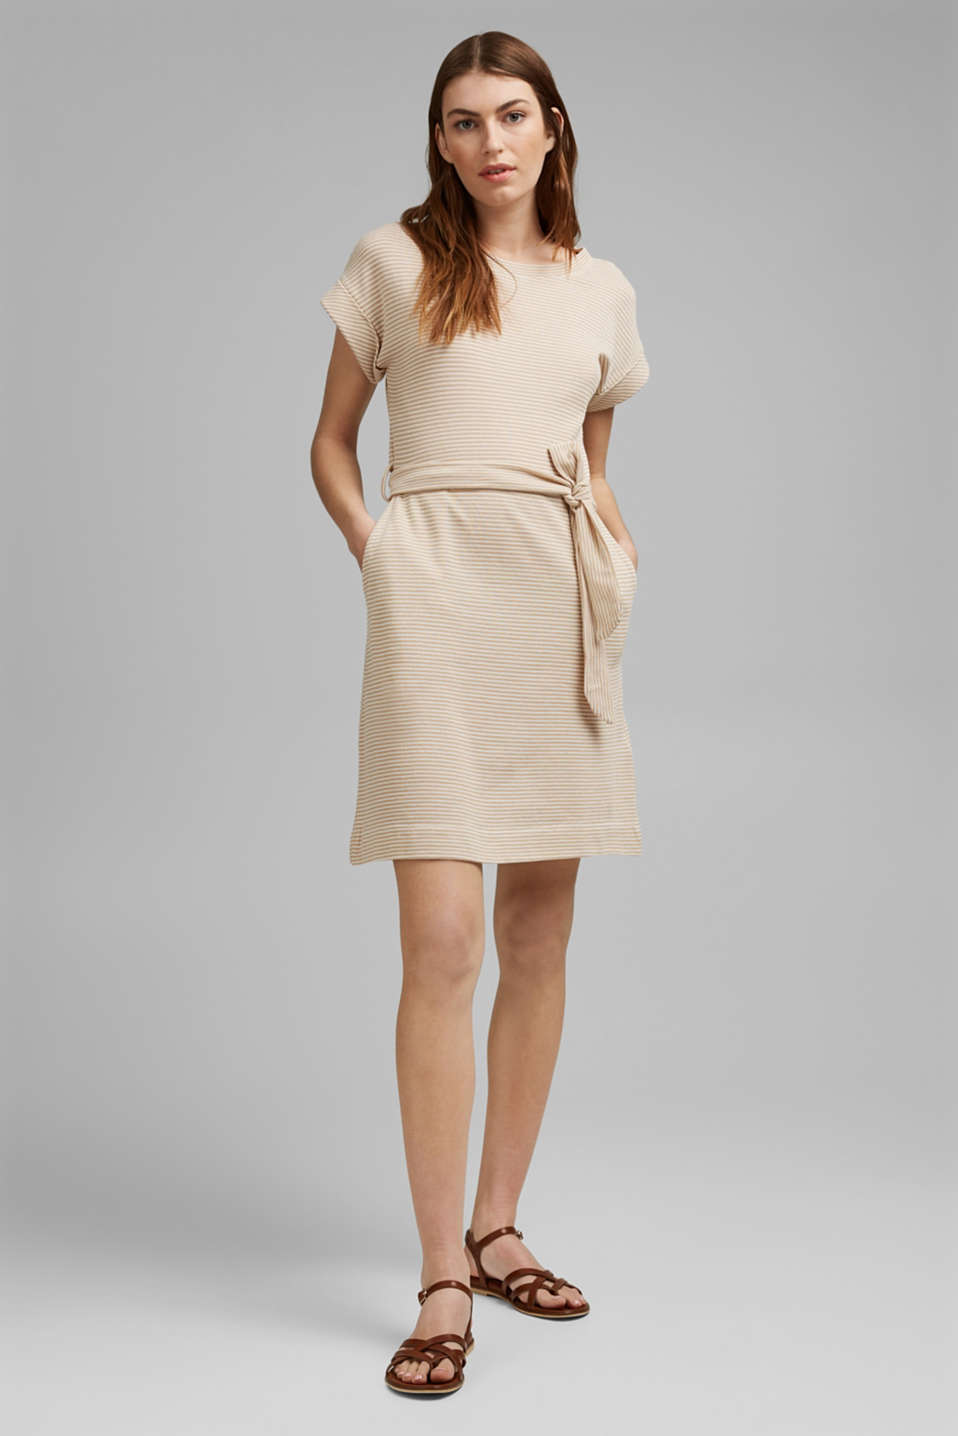 Esprit - Textured jersey dress, organic cotton